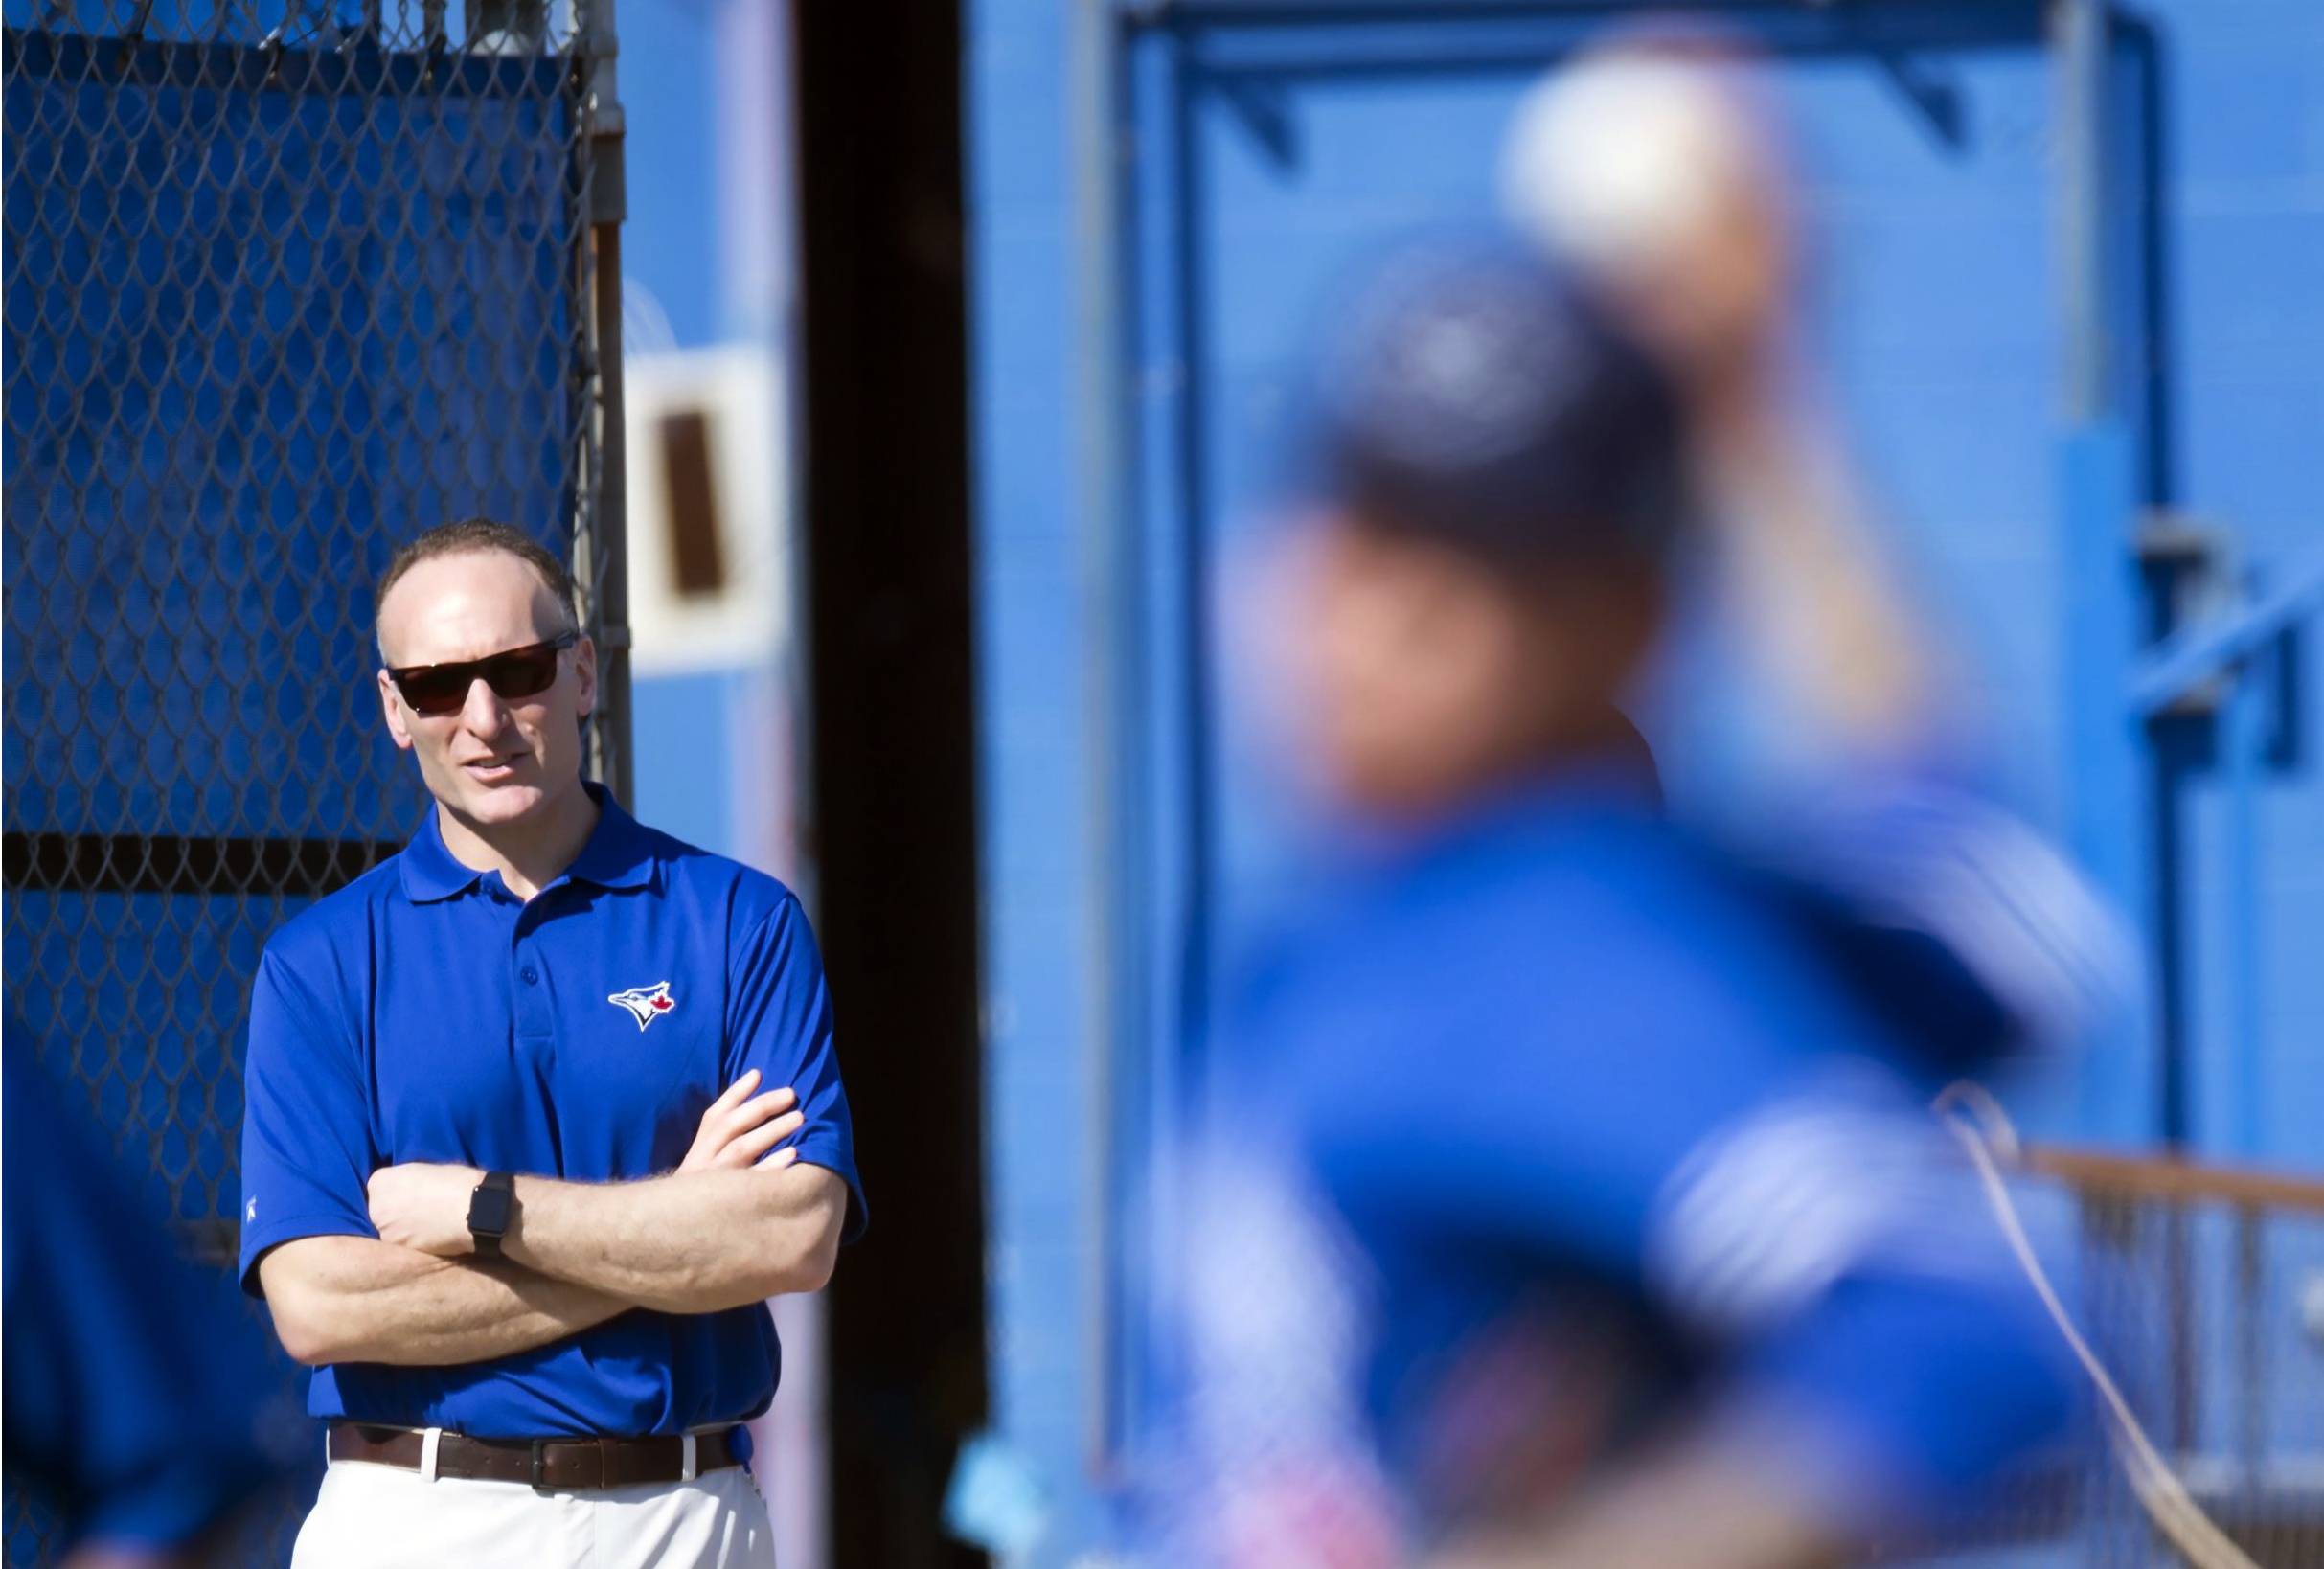 FILE - In this Feb. 22, 2016, file photo, Toronto Blue Jays President and CEO Mark Shapiro watches the first official spring training baseball workout in Dunedin, Fla. Shapiro is the man in the middle of the ALCS. Torontos president and CEO spent half of